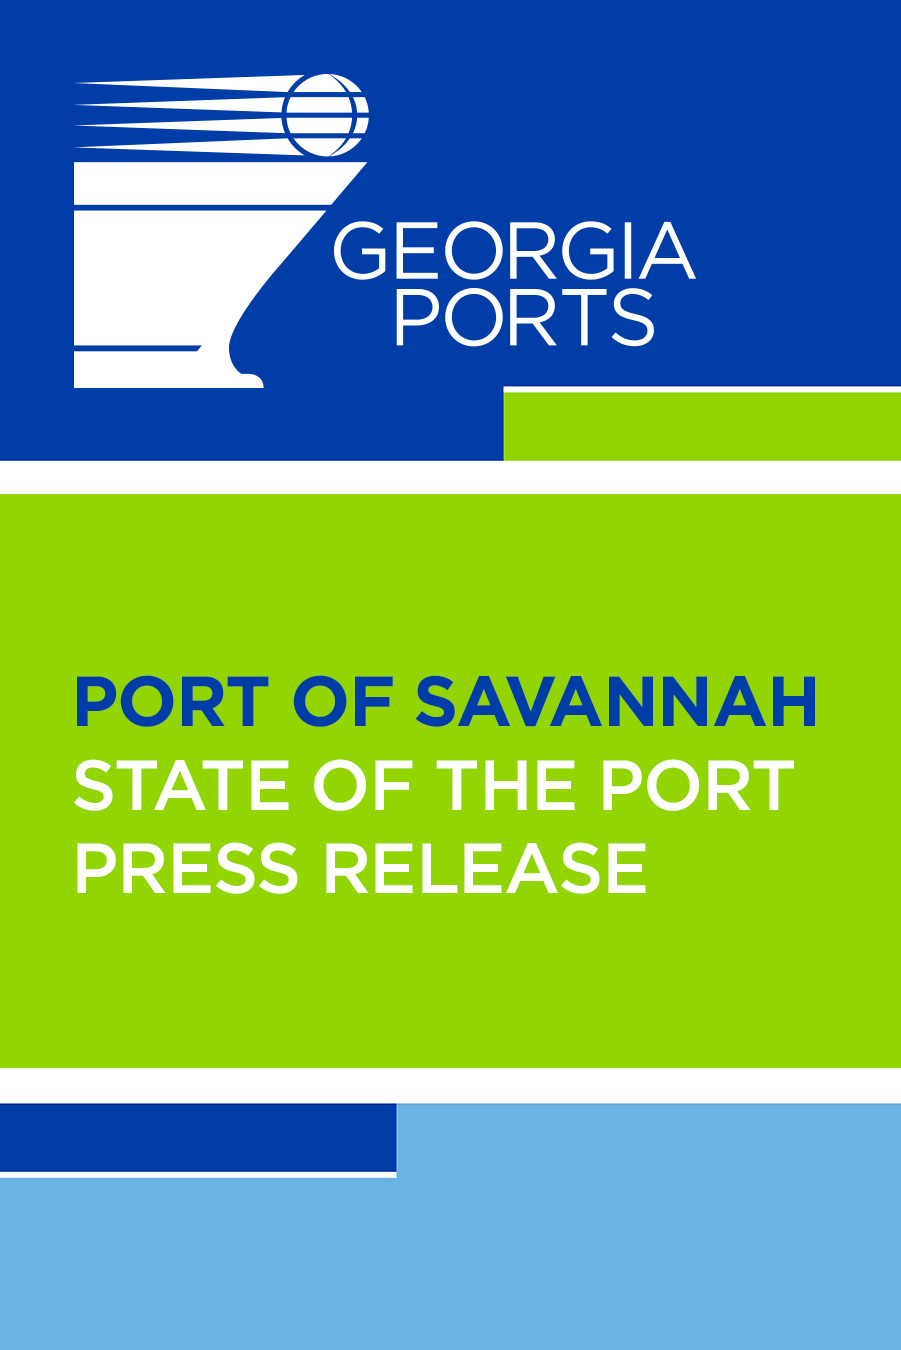 CLICK TO DOWNLOAD   2018 Georgia Ports State of the Port Press Release (PDF - 108MB)